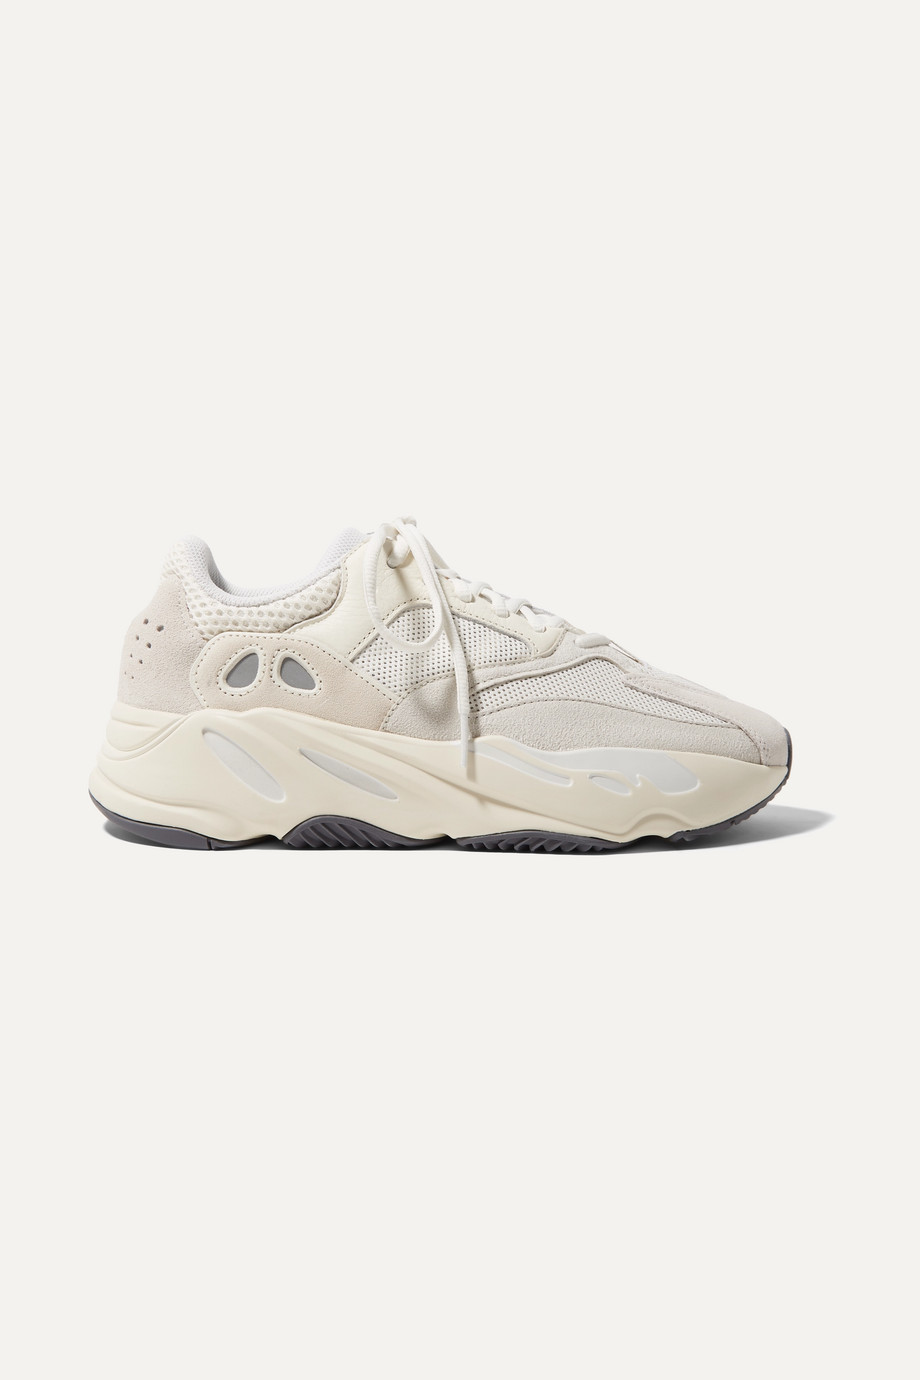 Exact Product: Yeezy Boost 700 suede, leather and mesh sneakers, Brand: Adidas Originals, Available on: net-a-porter.com, Price: $300